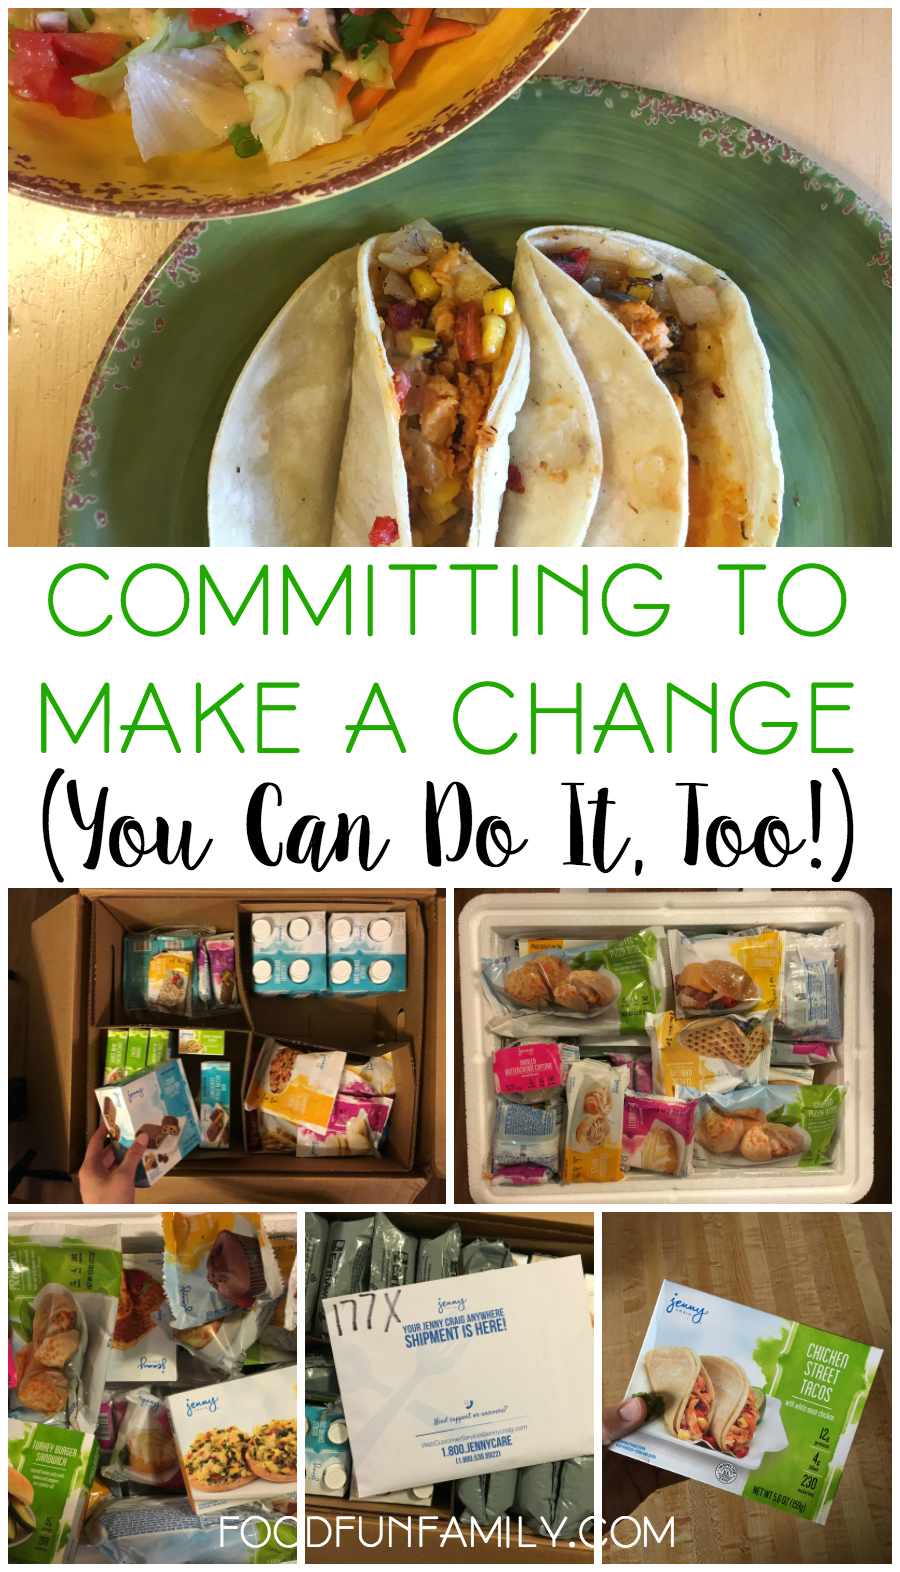 Committing to Make a Change (You Can Do It, Too!) - Beginning my weight loss journey with Jenny Craig